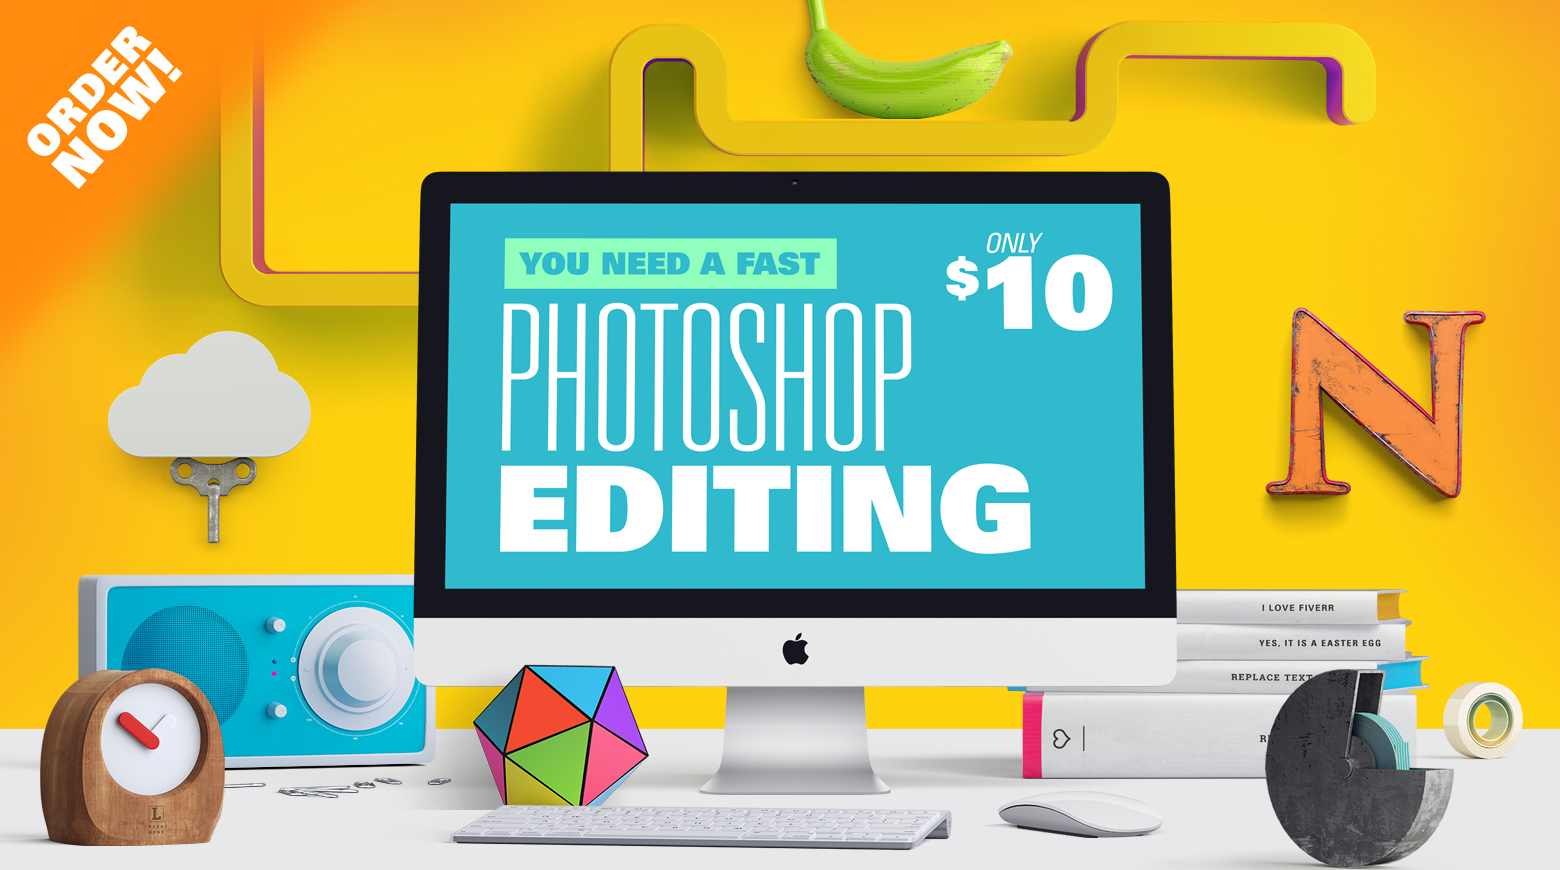 photoshop editing Fast